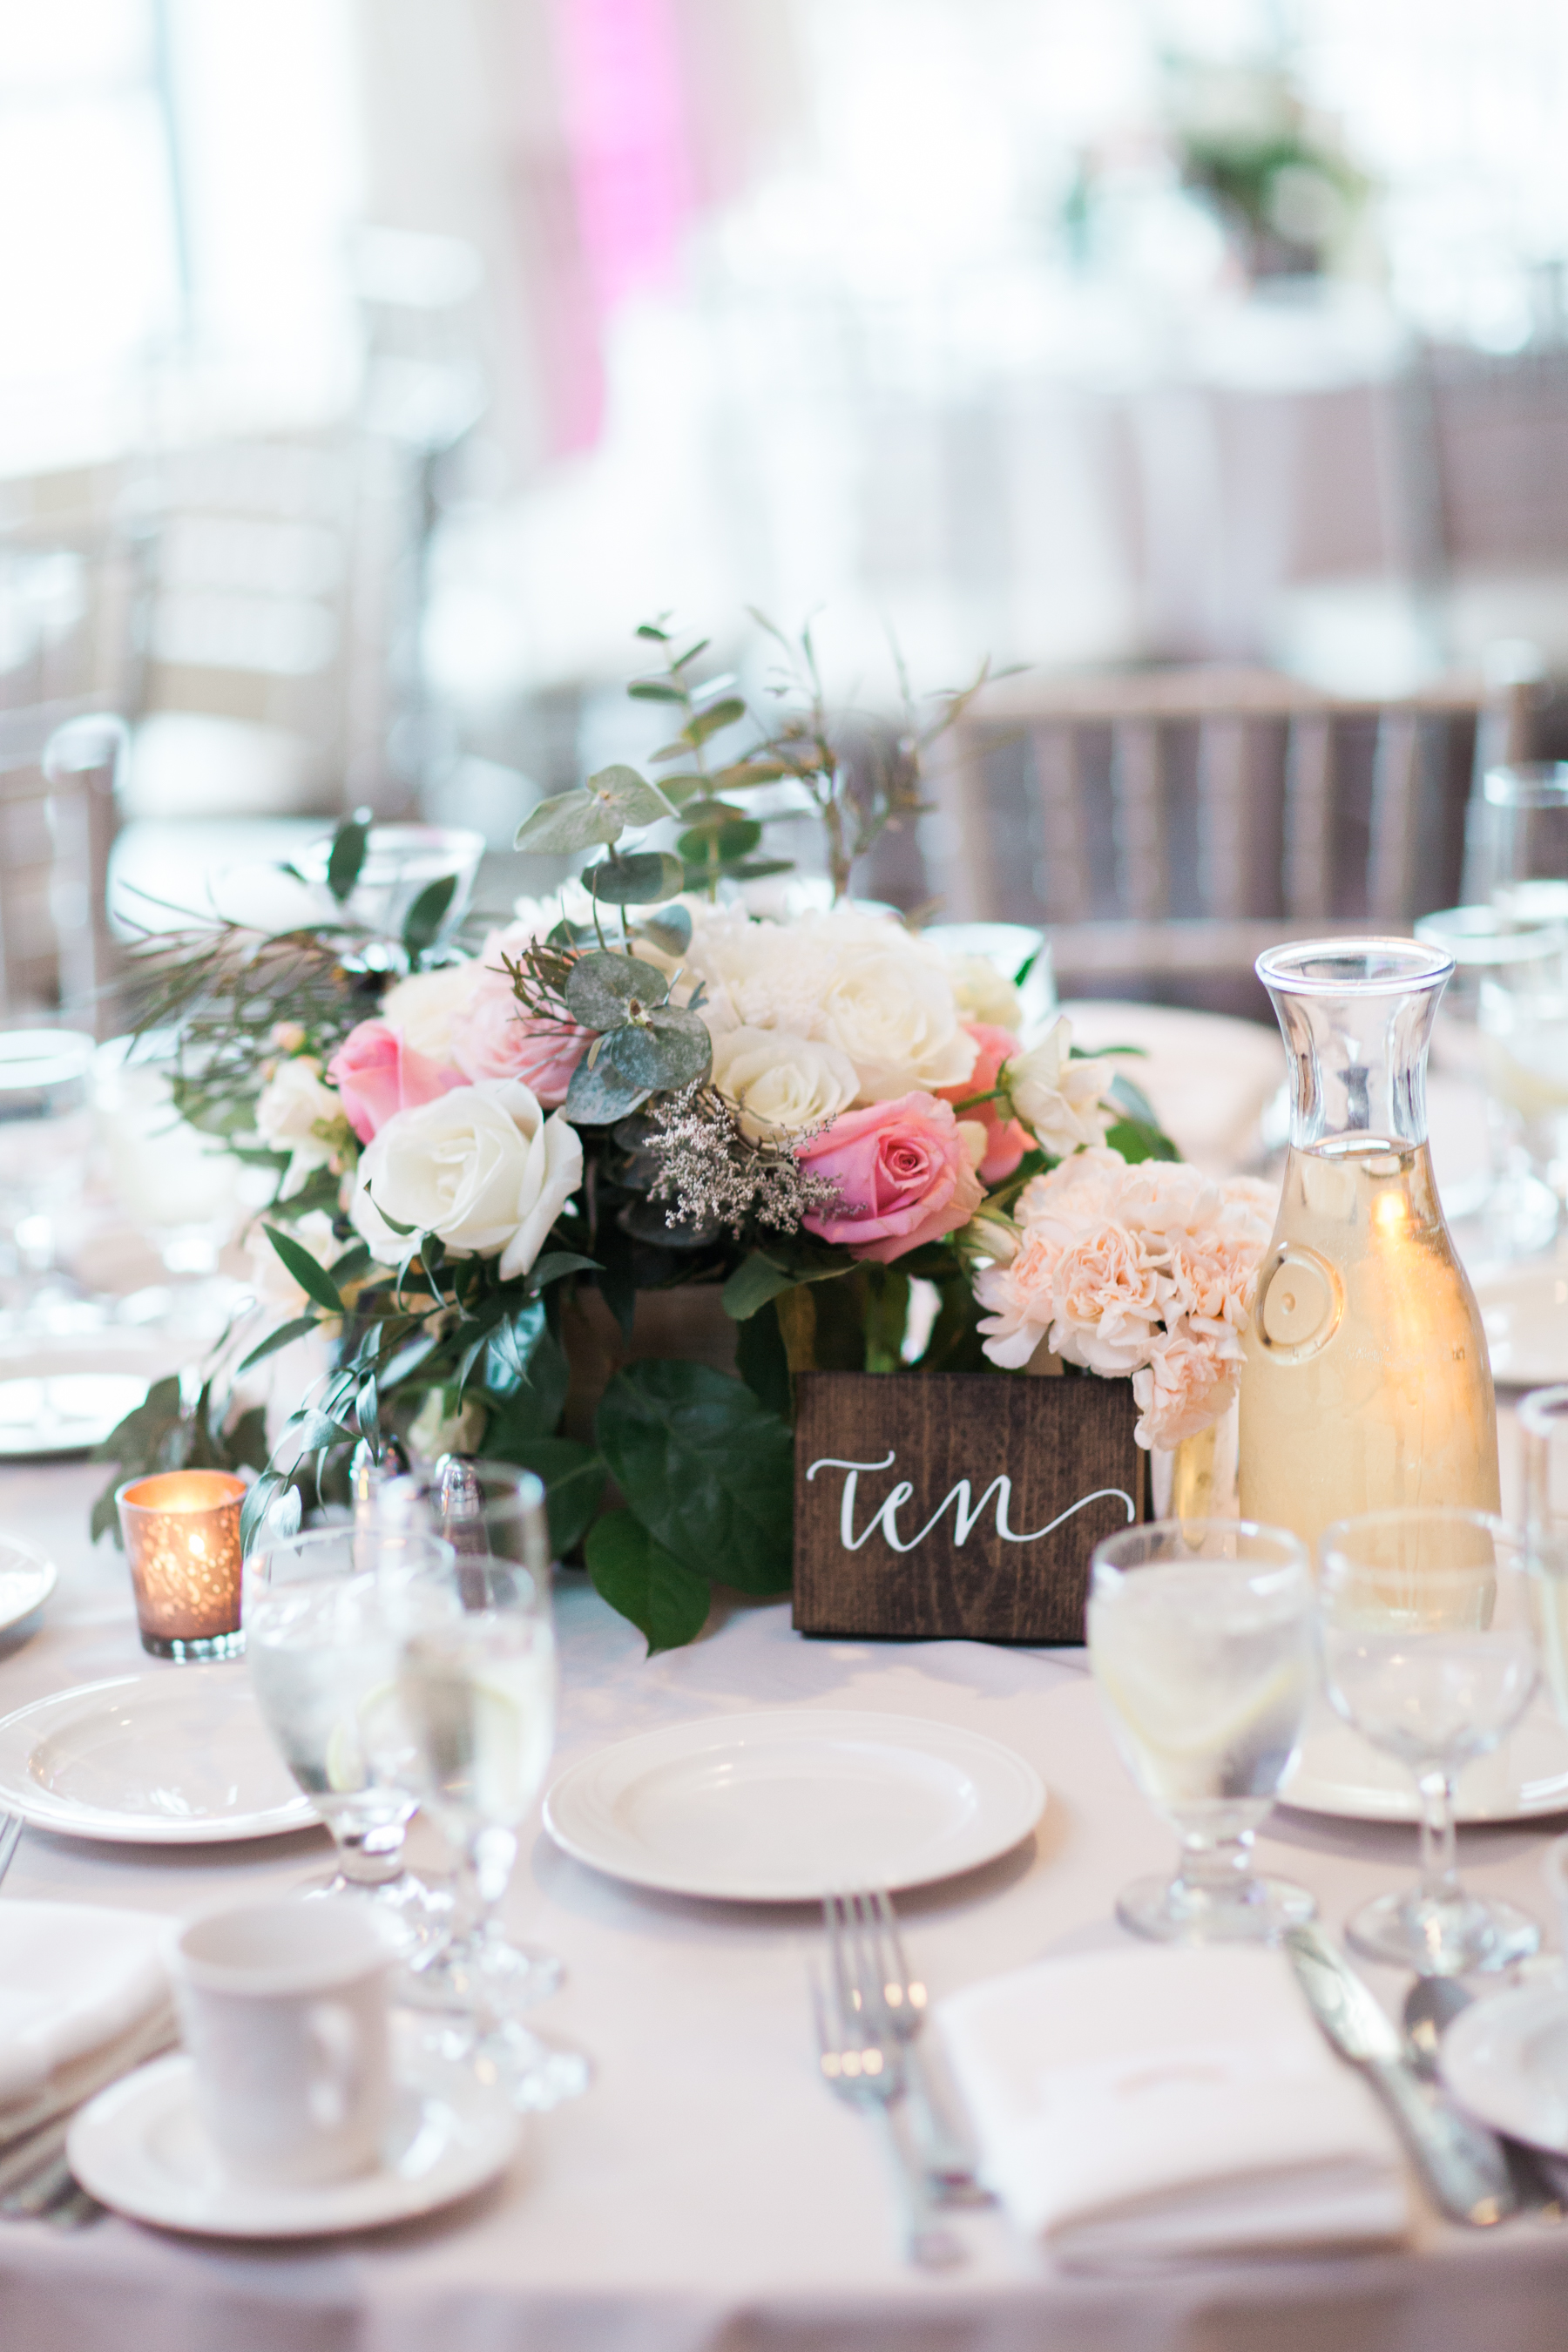 Rustic wedding centerpiece